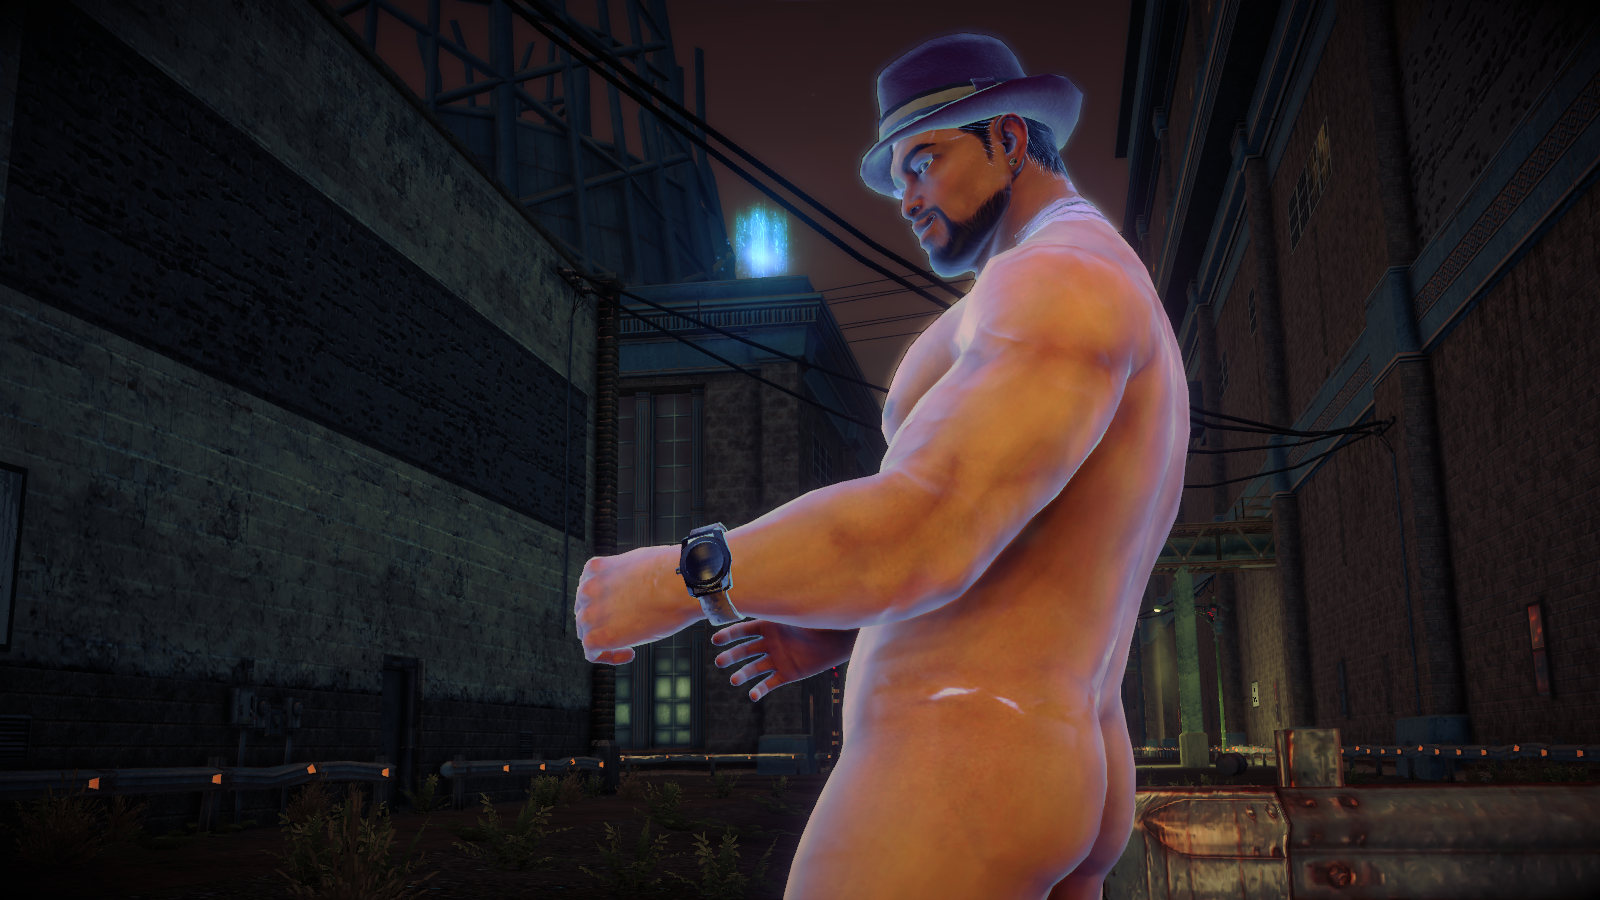 Saints row 2 naked mods nudes pics